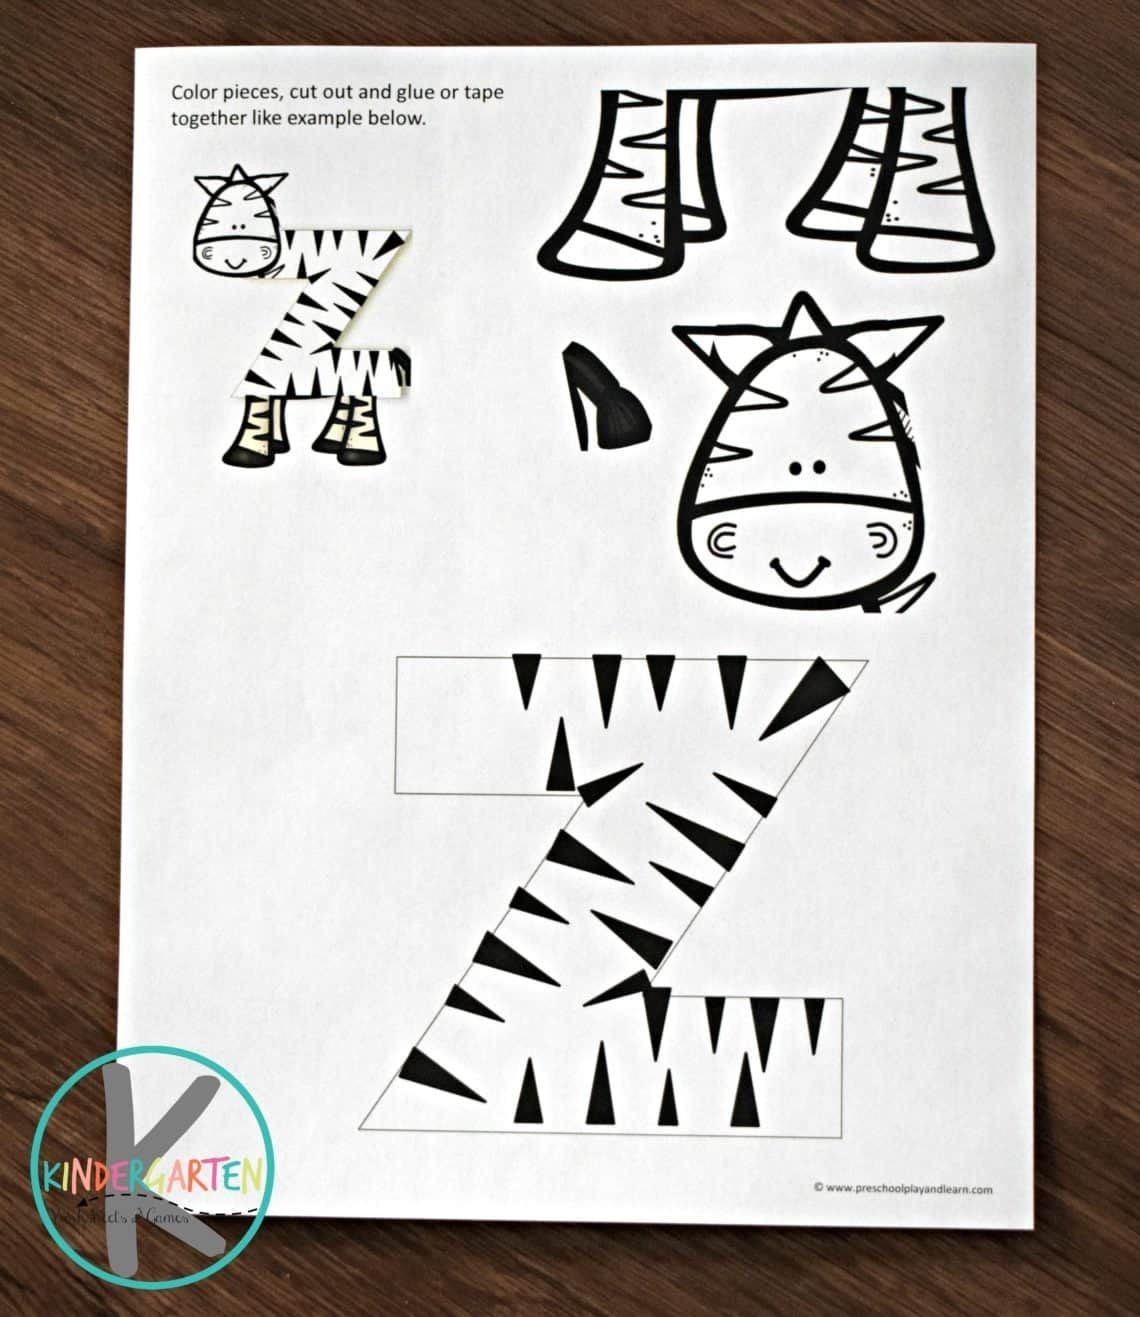 letter z zebra craft template  free printable Letter z craft of a zebra; perfect ..